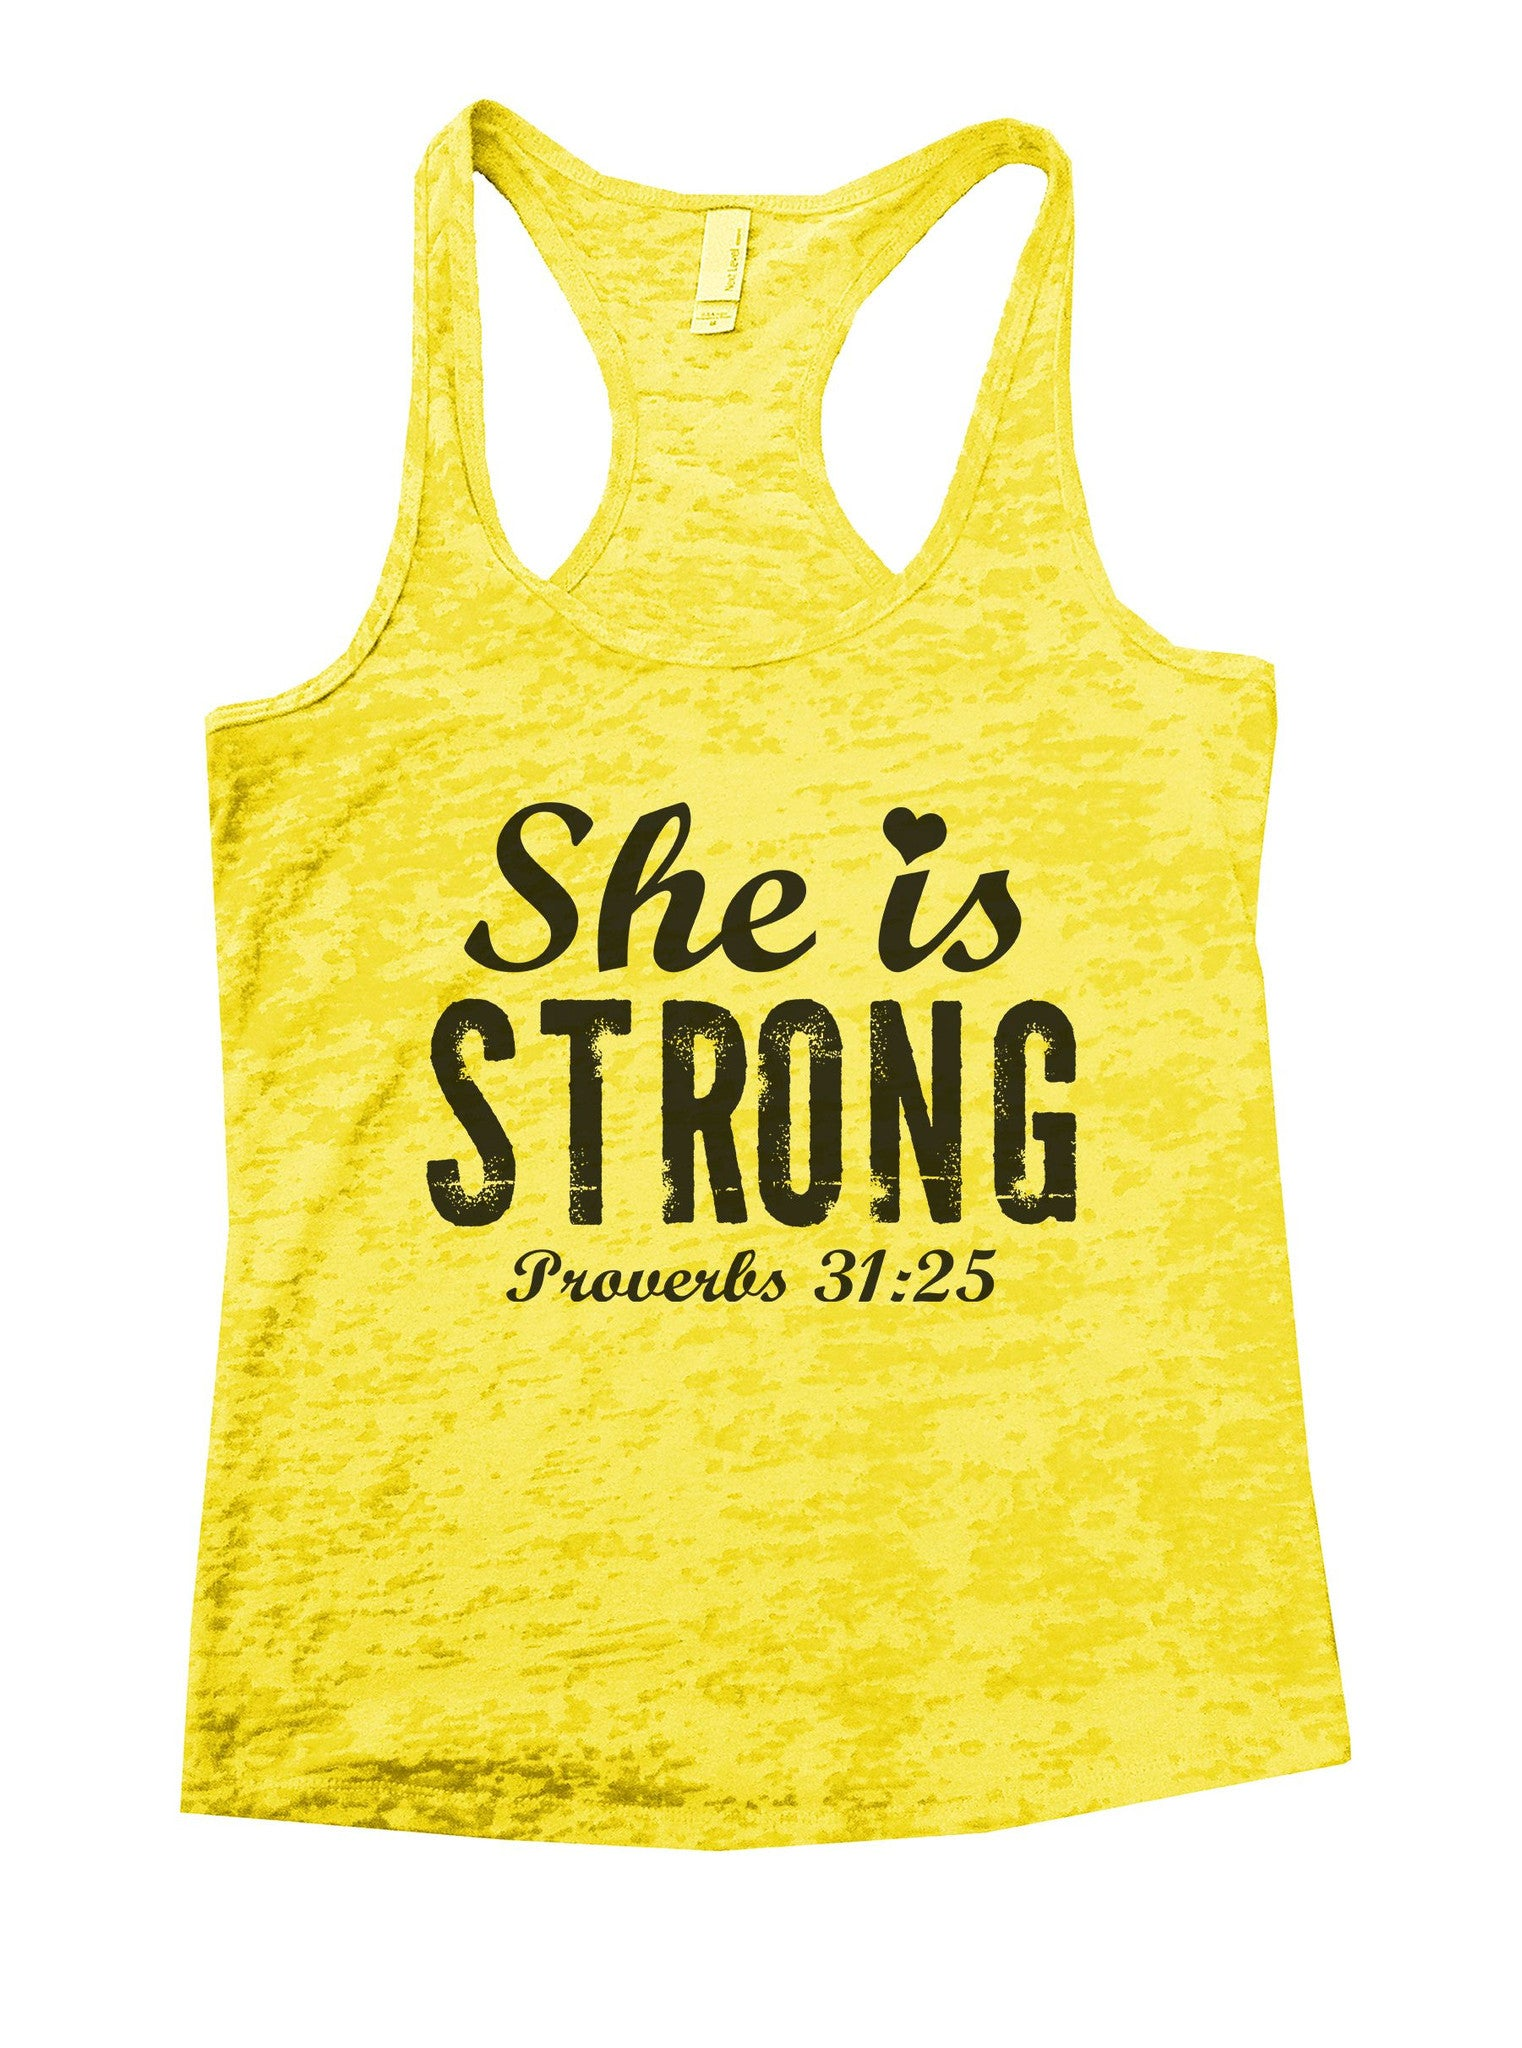 She Is Strong Proverbs 31:25 Burnout Tank Top By BurnoutTankTops.com - 939 - Funny Shirts Tank Tops Burnouts and Triblends  - 7